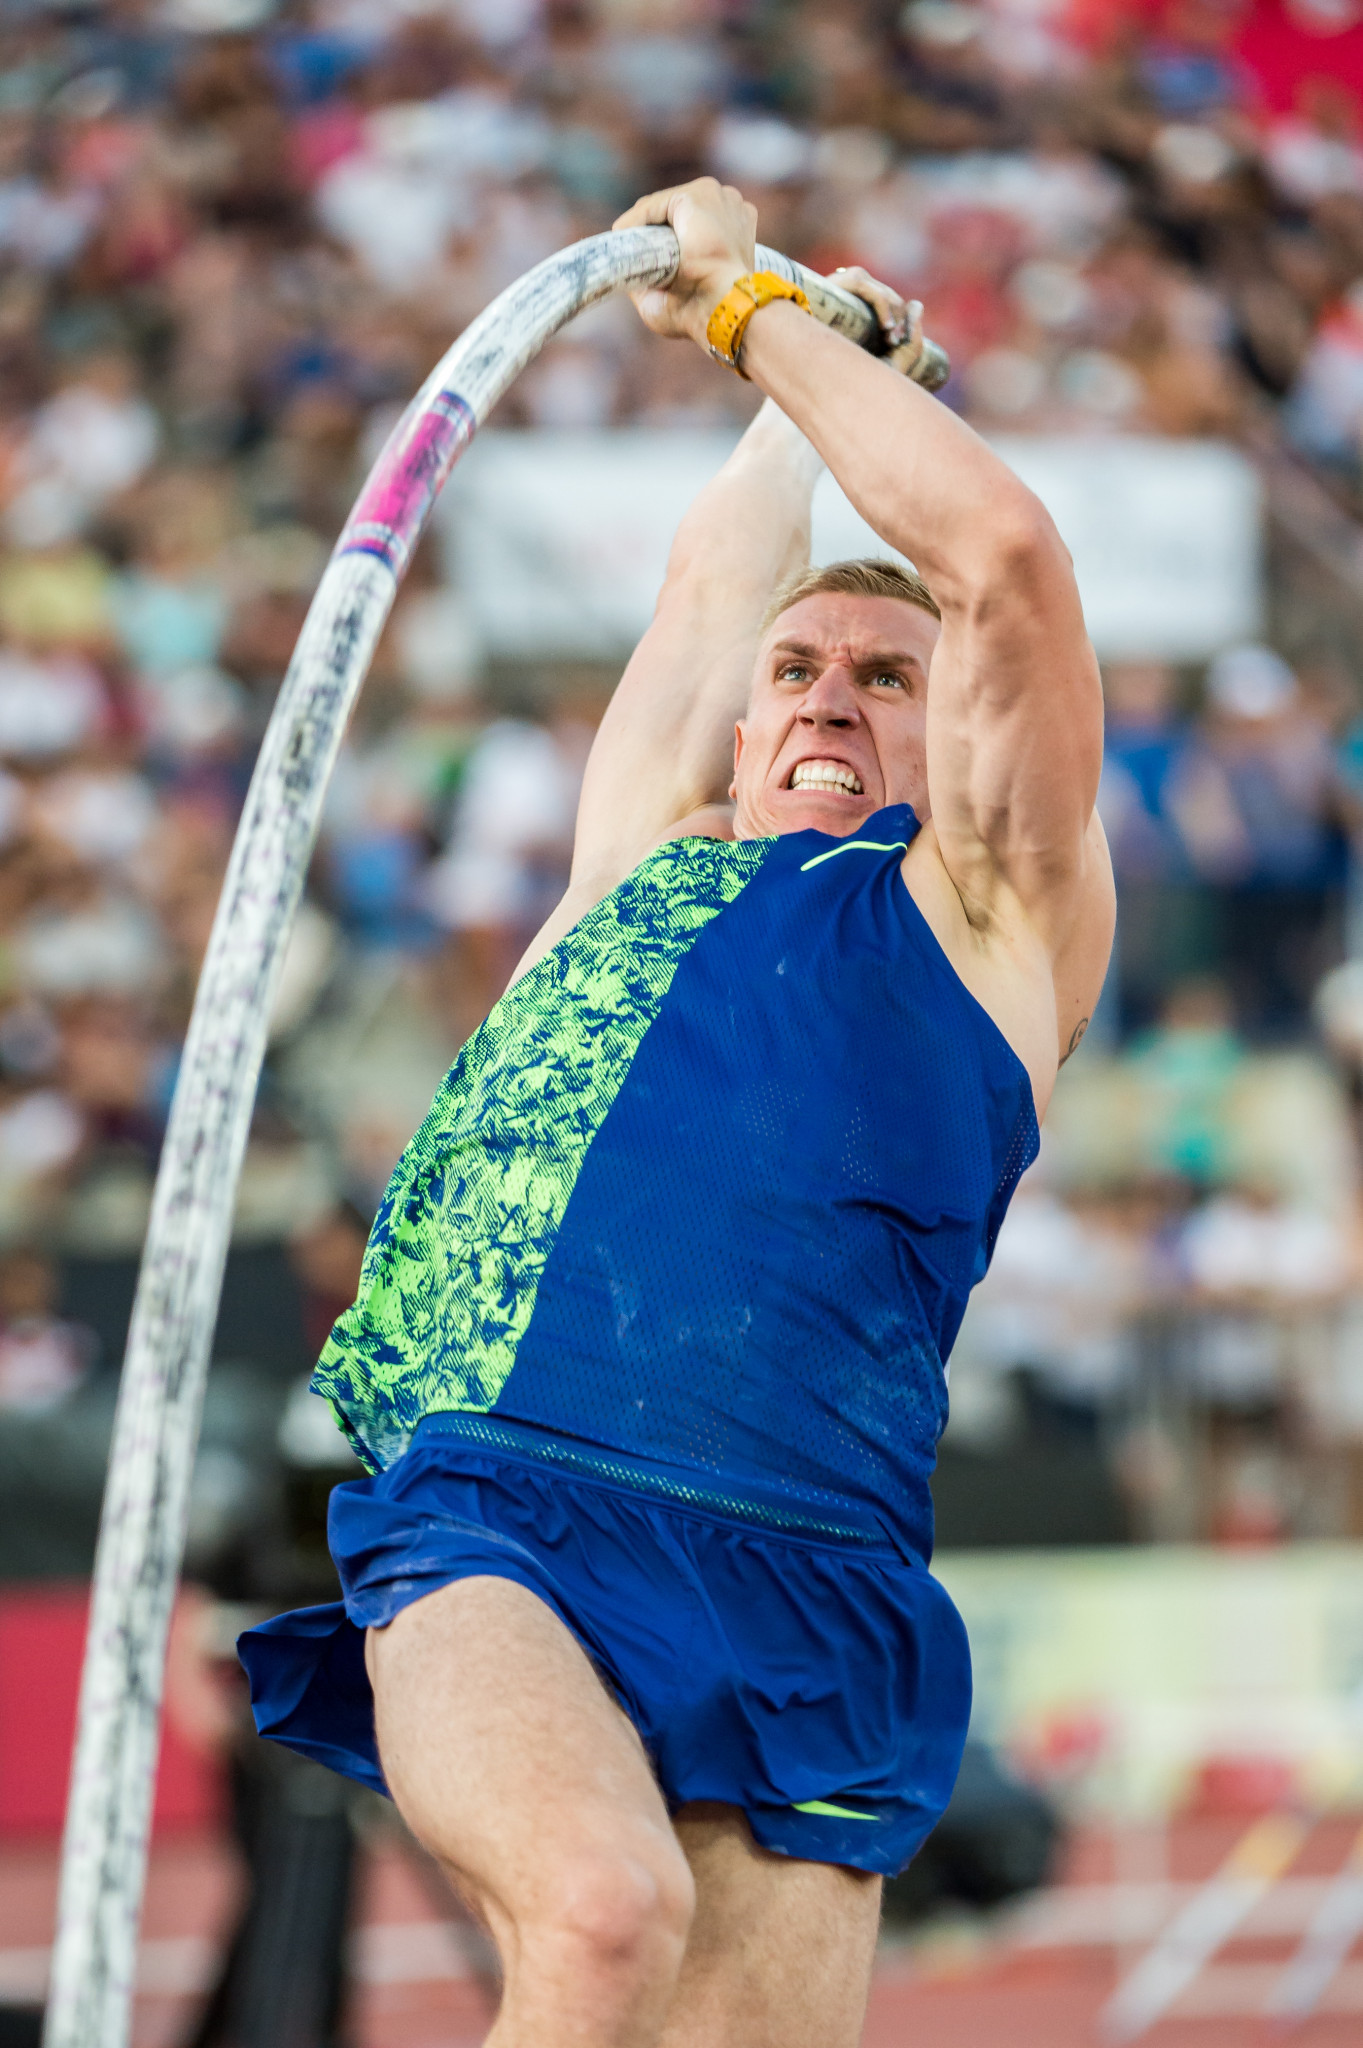 Poland's Piotr Lisek won the pole vault at the IAAF Diamond League in Switzerland in a personal best 6.01 metres ©Getty Images